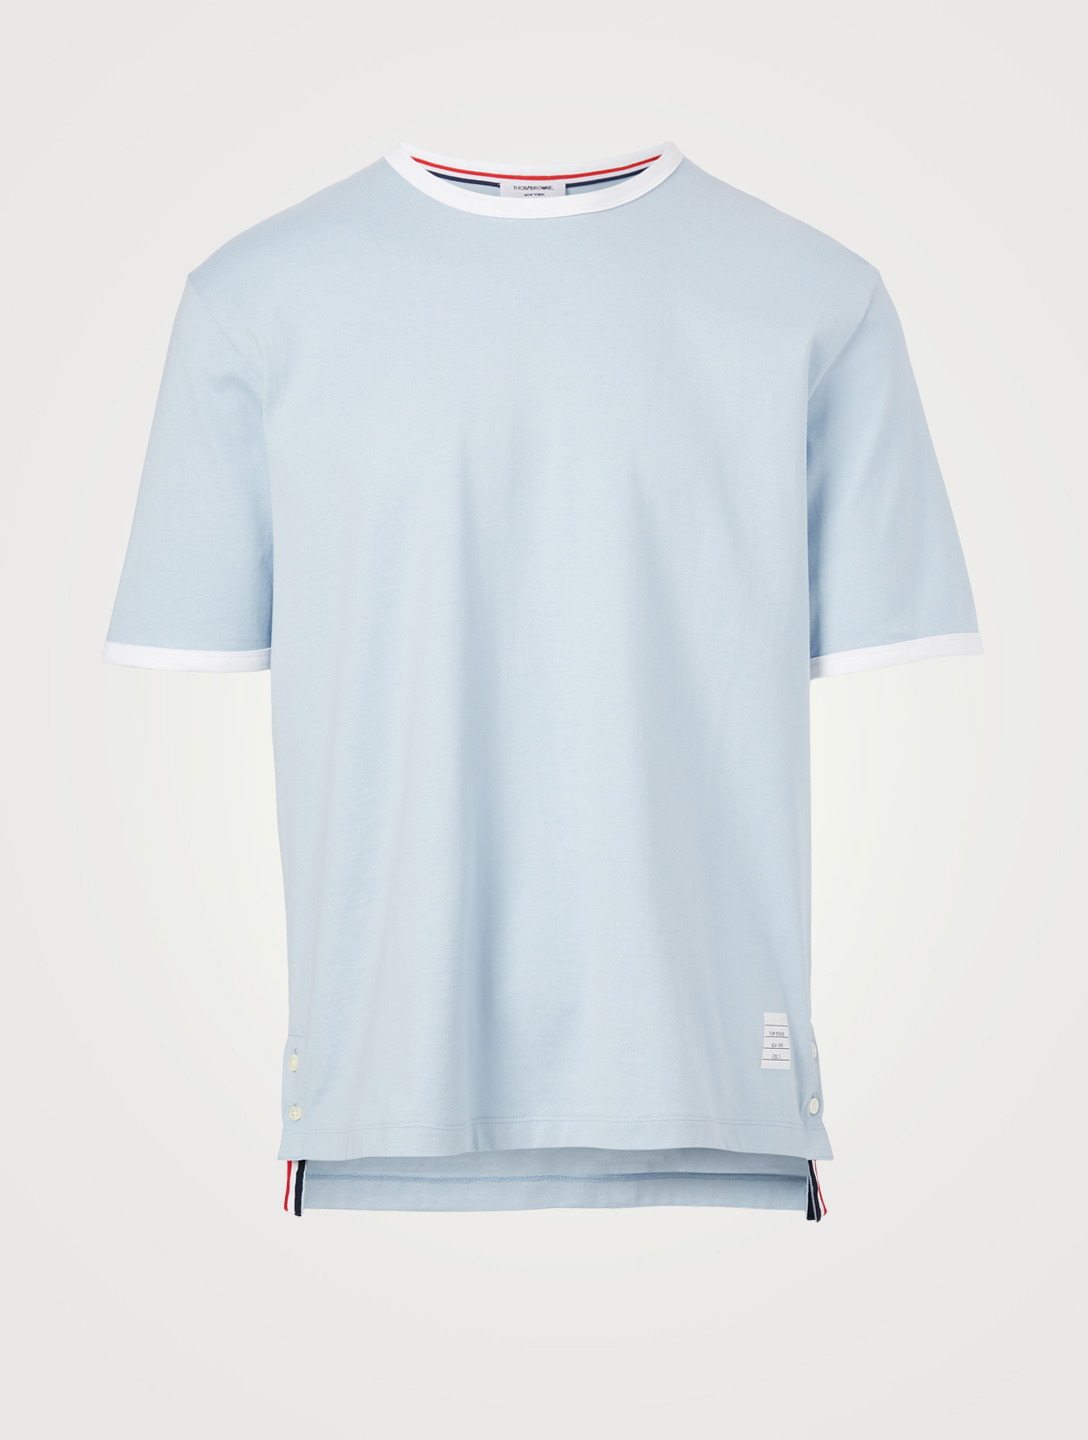 THOM BROWNE Cotton Ringer T-Shirt Men's Blue